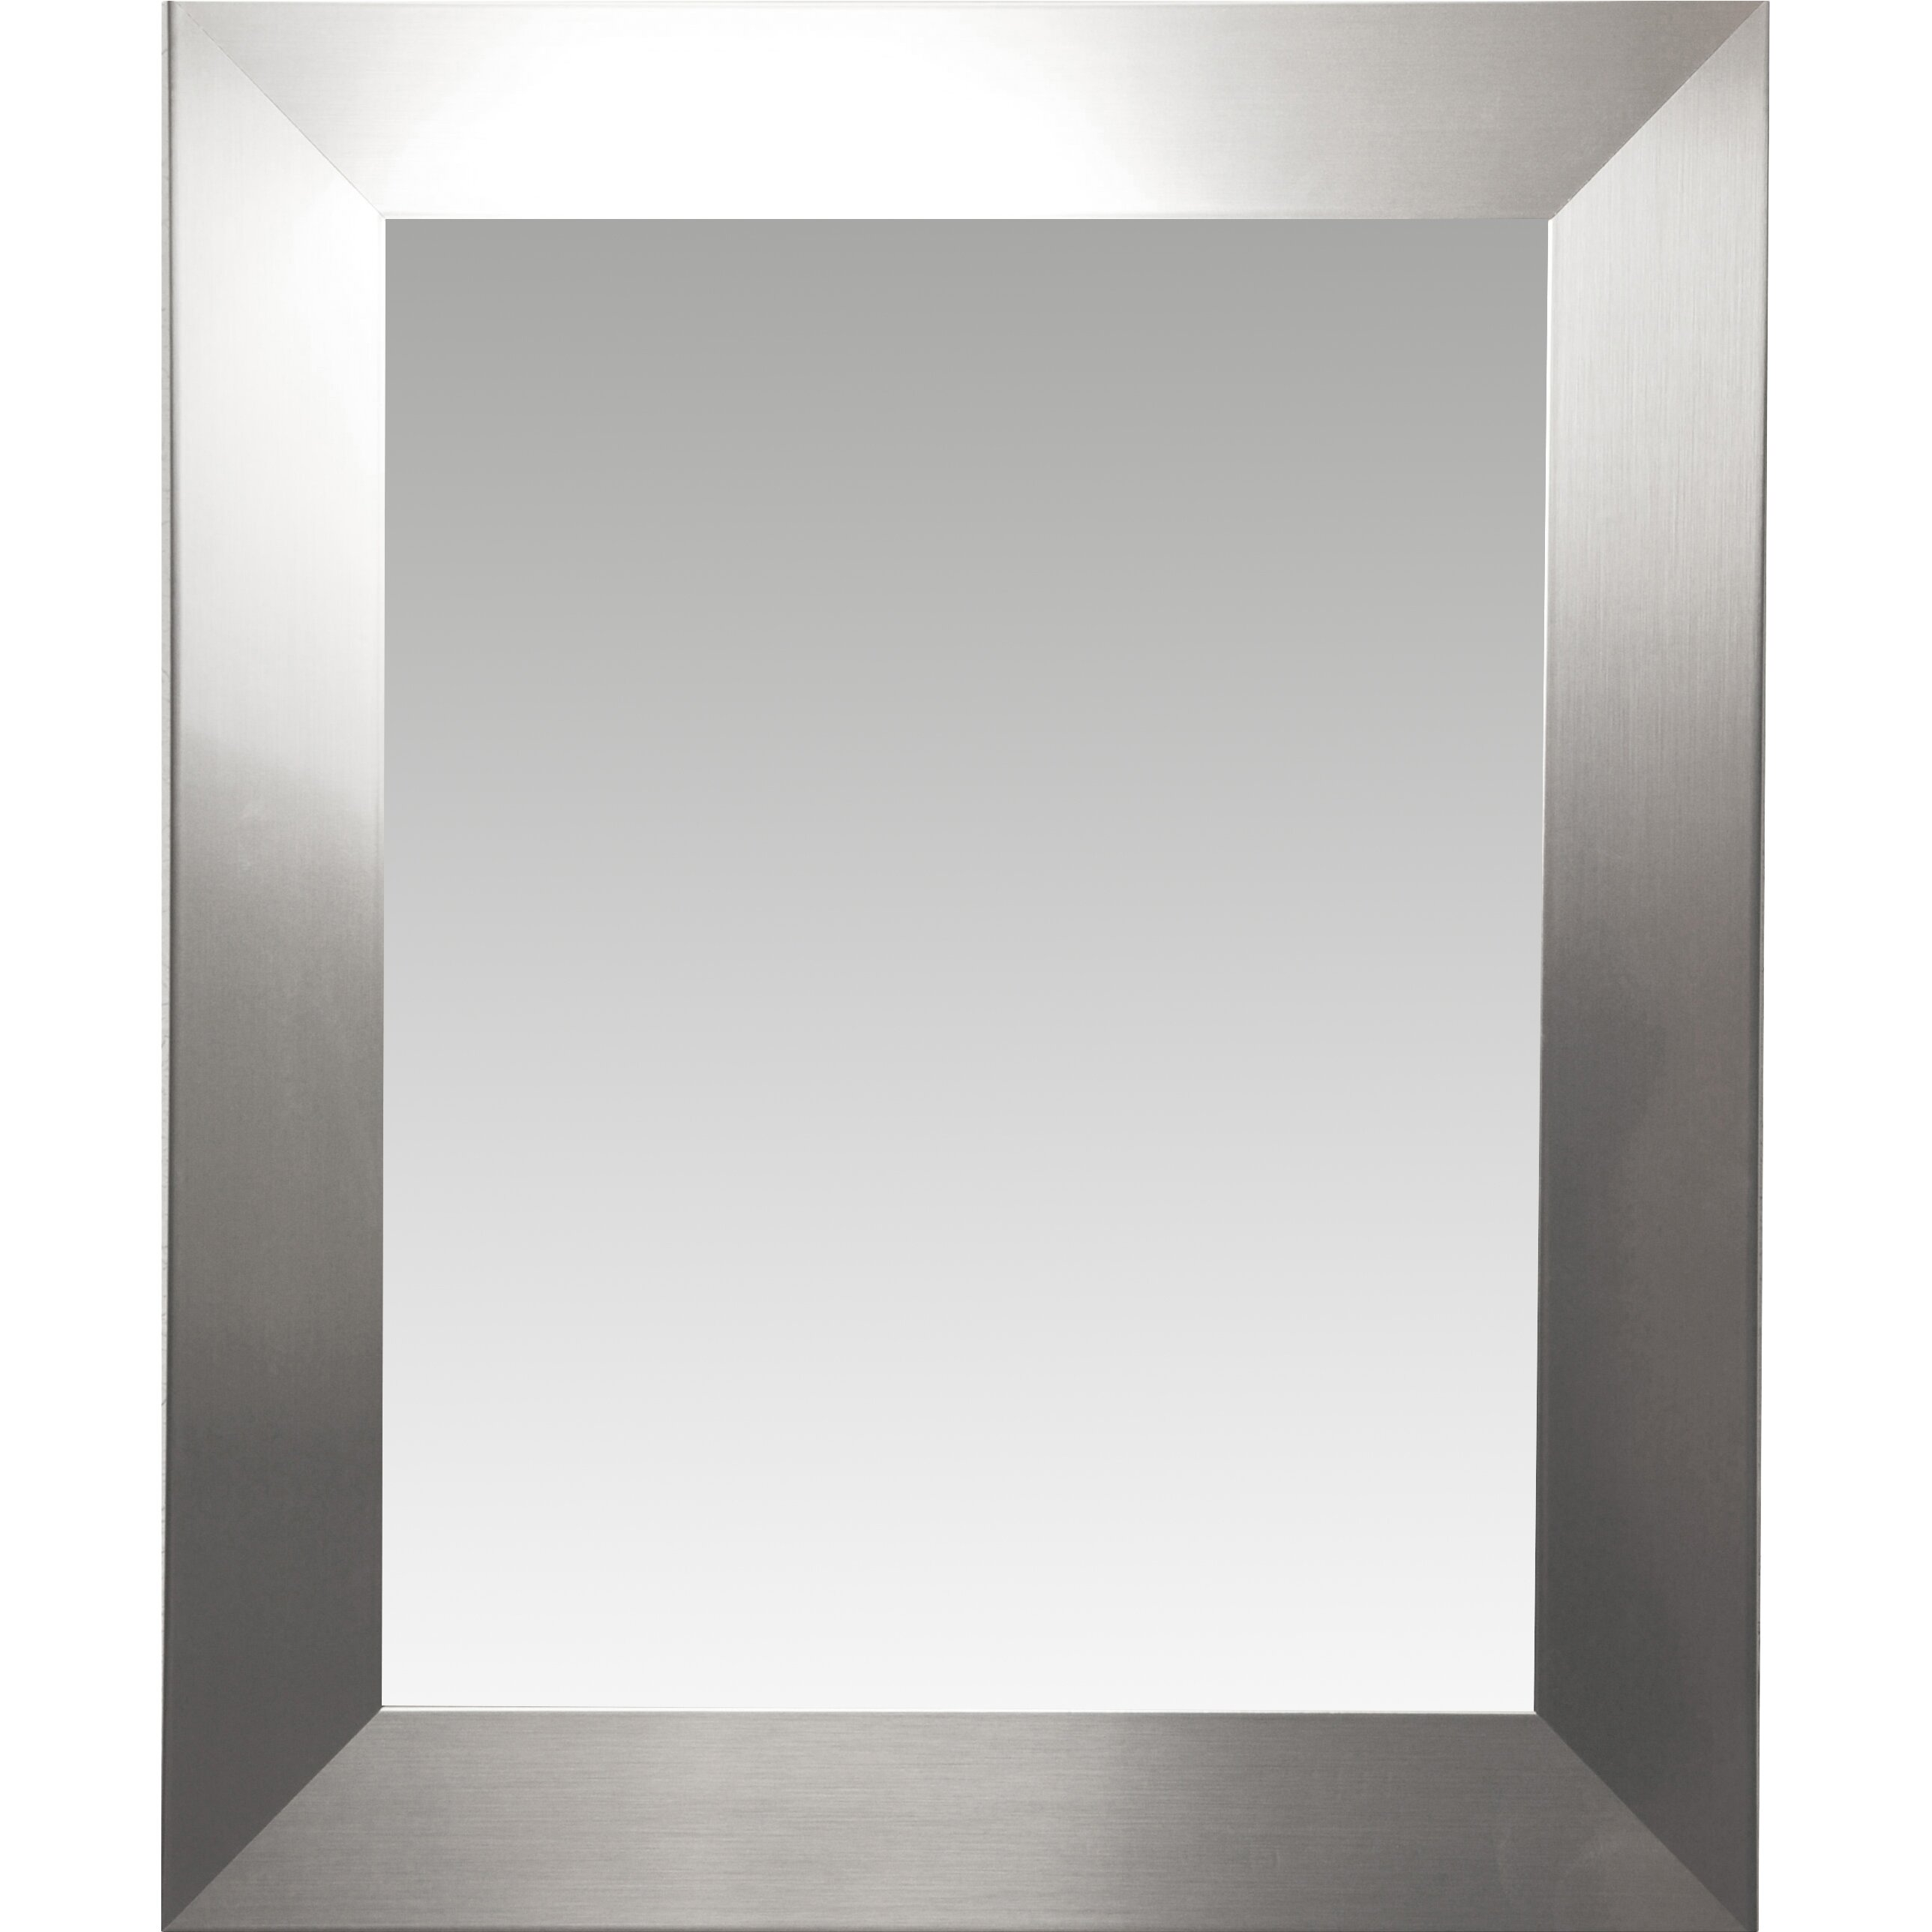 Rayne mirrors ava modern wall mirror reviews wayfair for Mirror video